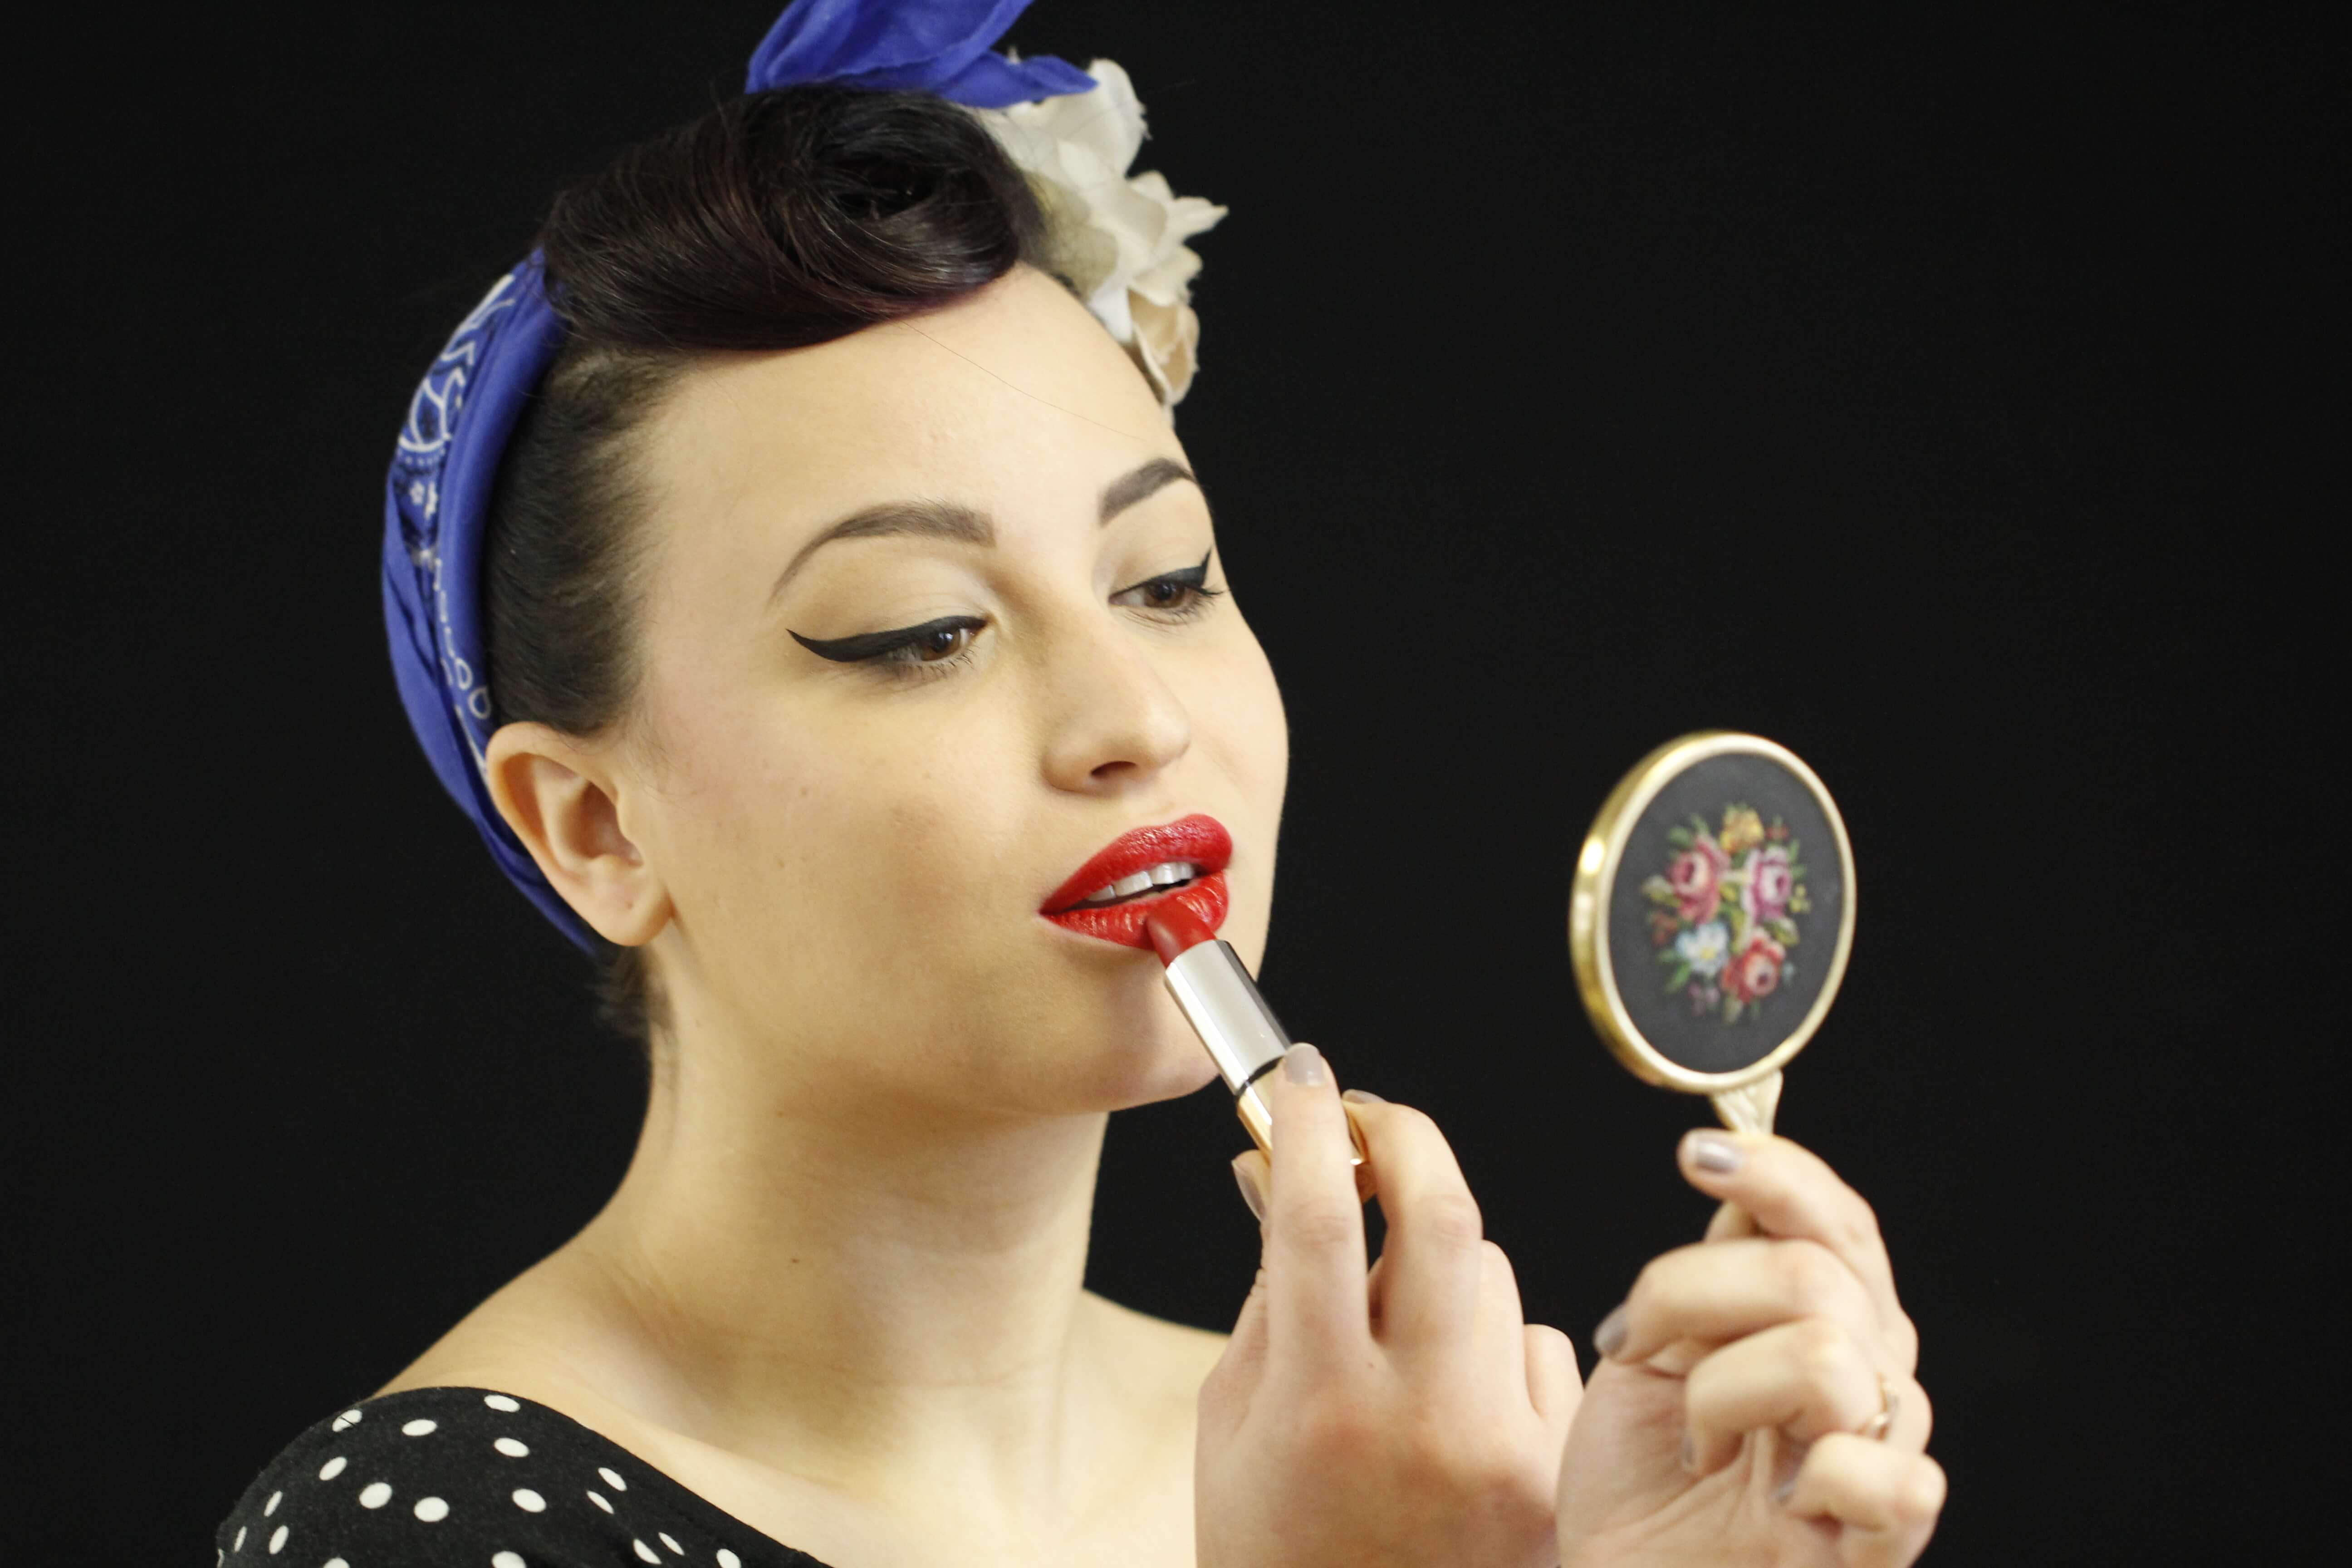 Maquillage et coiffure style Pin Up